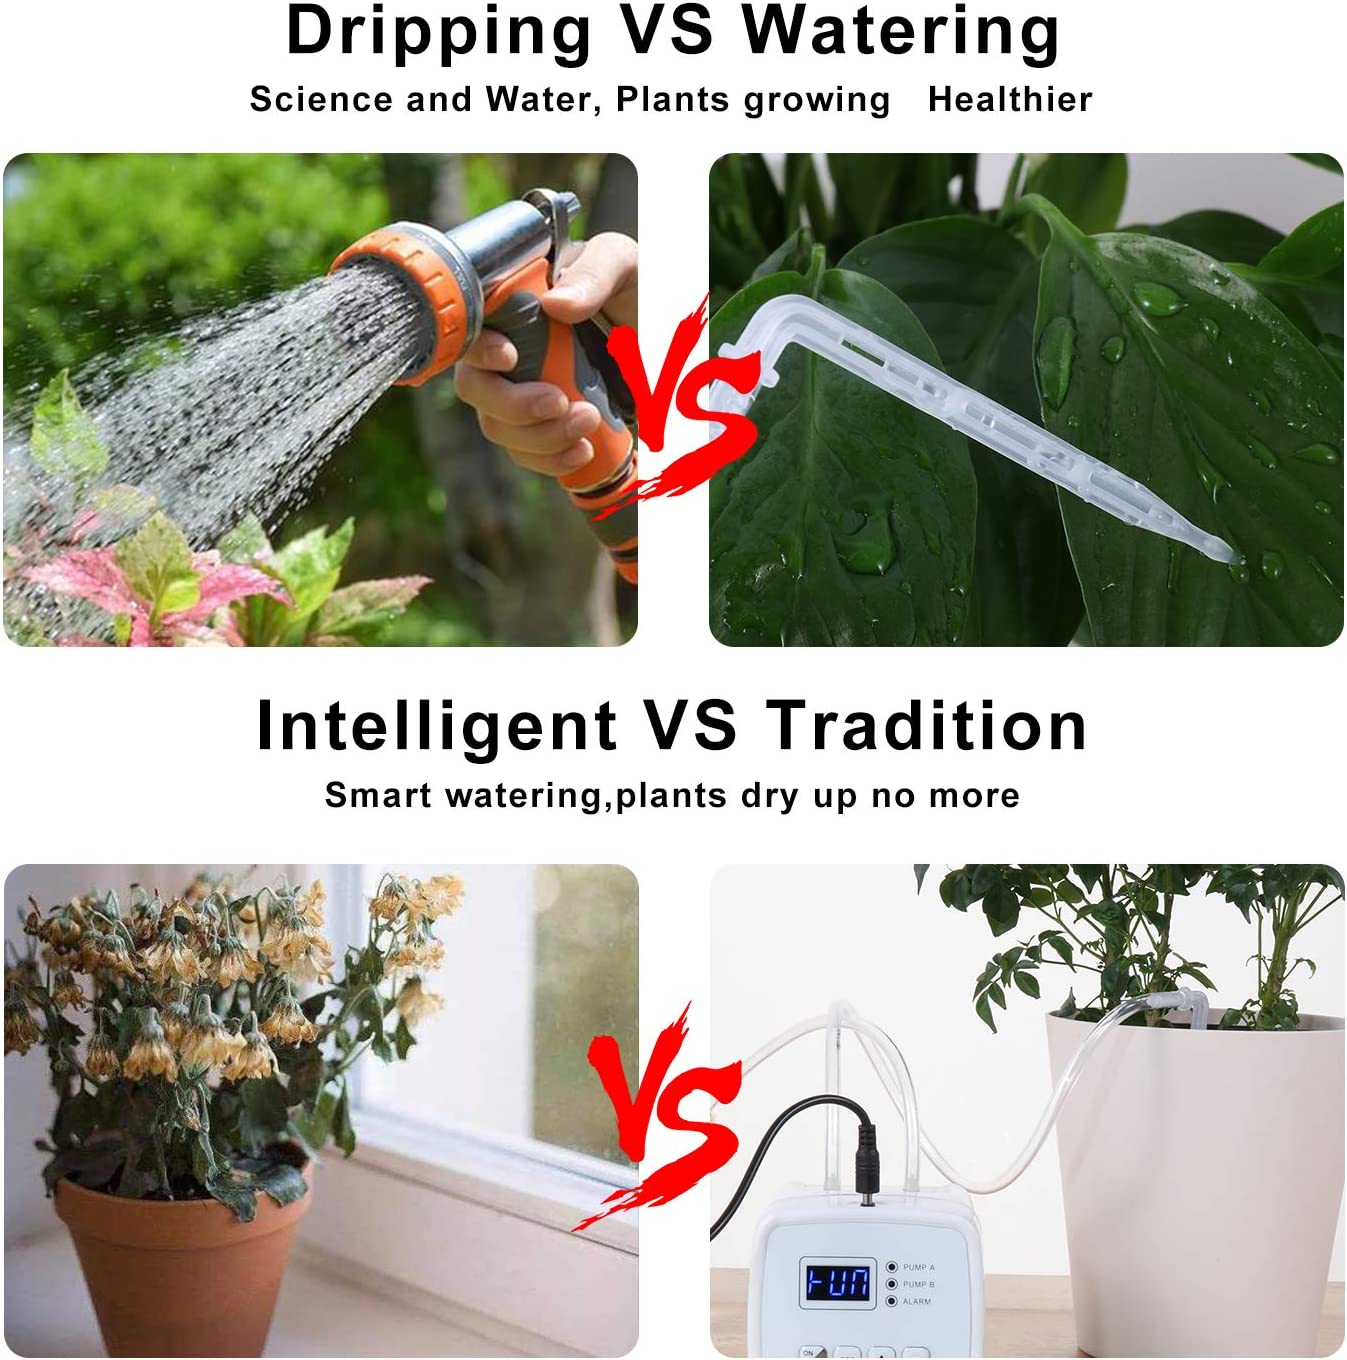 ootrades Double Pump Automatic Watering System, DIY Drip Tape Irrigation  Kit Self Watering System with Timer, 20 420 Days Interval Programming  Vacation ...